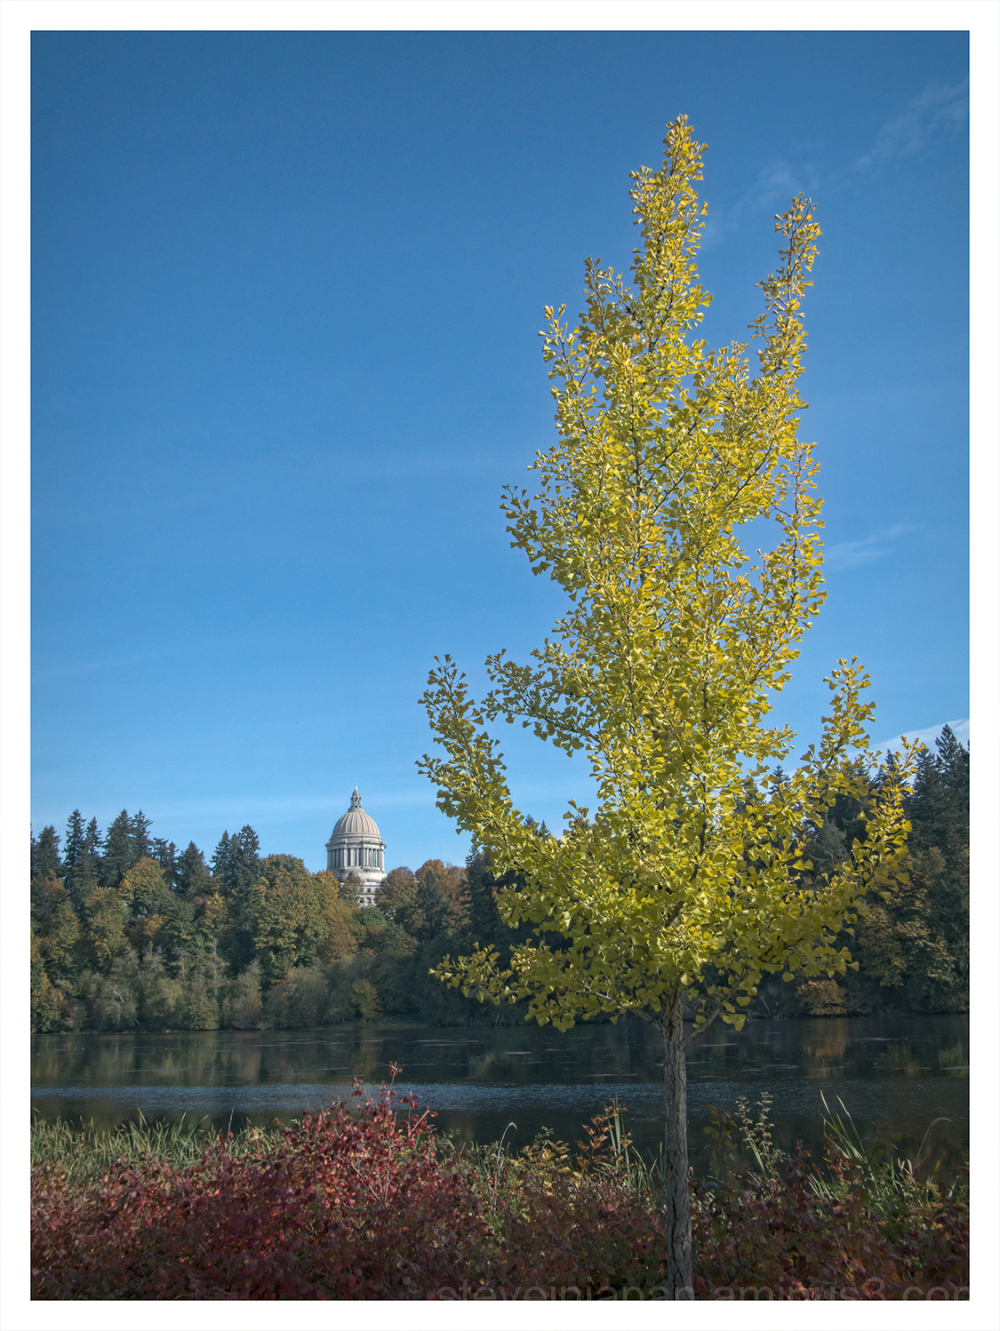 Ginkgo on Capitol Lake in Olympia, Washington.